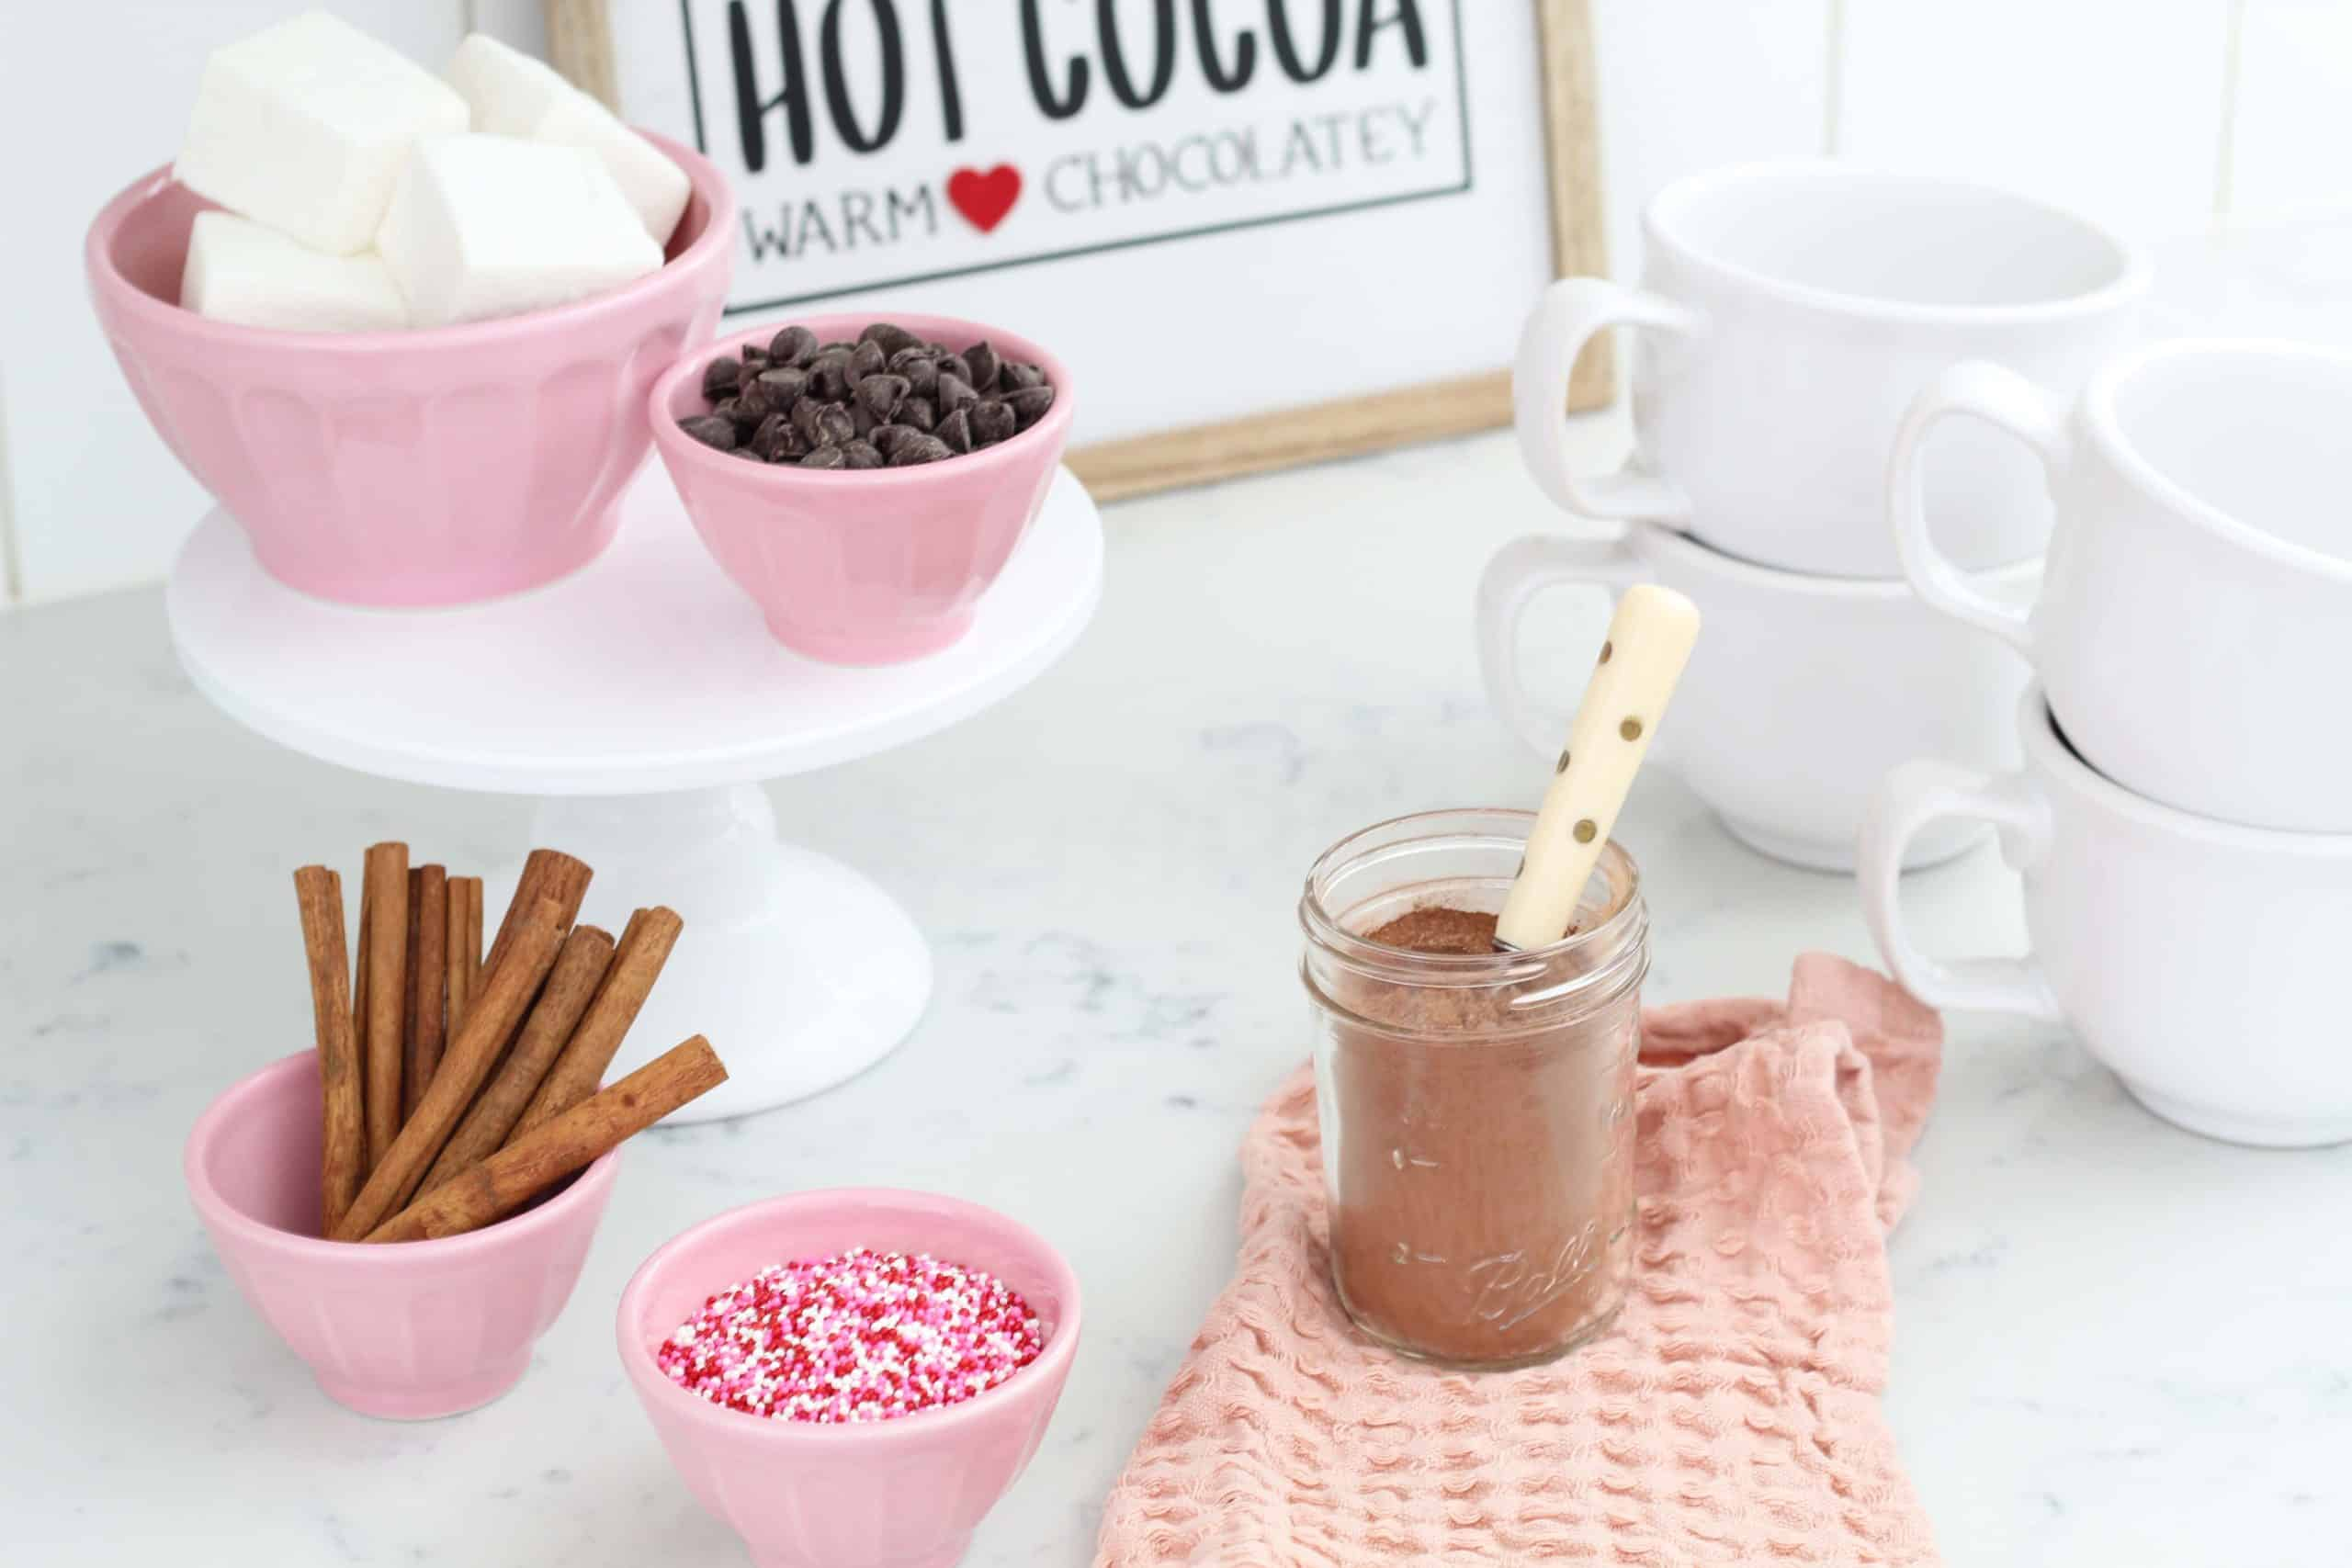 pink anthropologie bowls, white cake stand, homemade marshmallows, valentine's hot cocoa bar